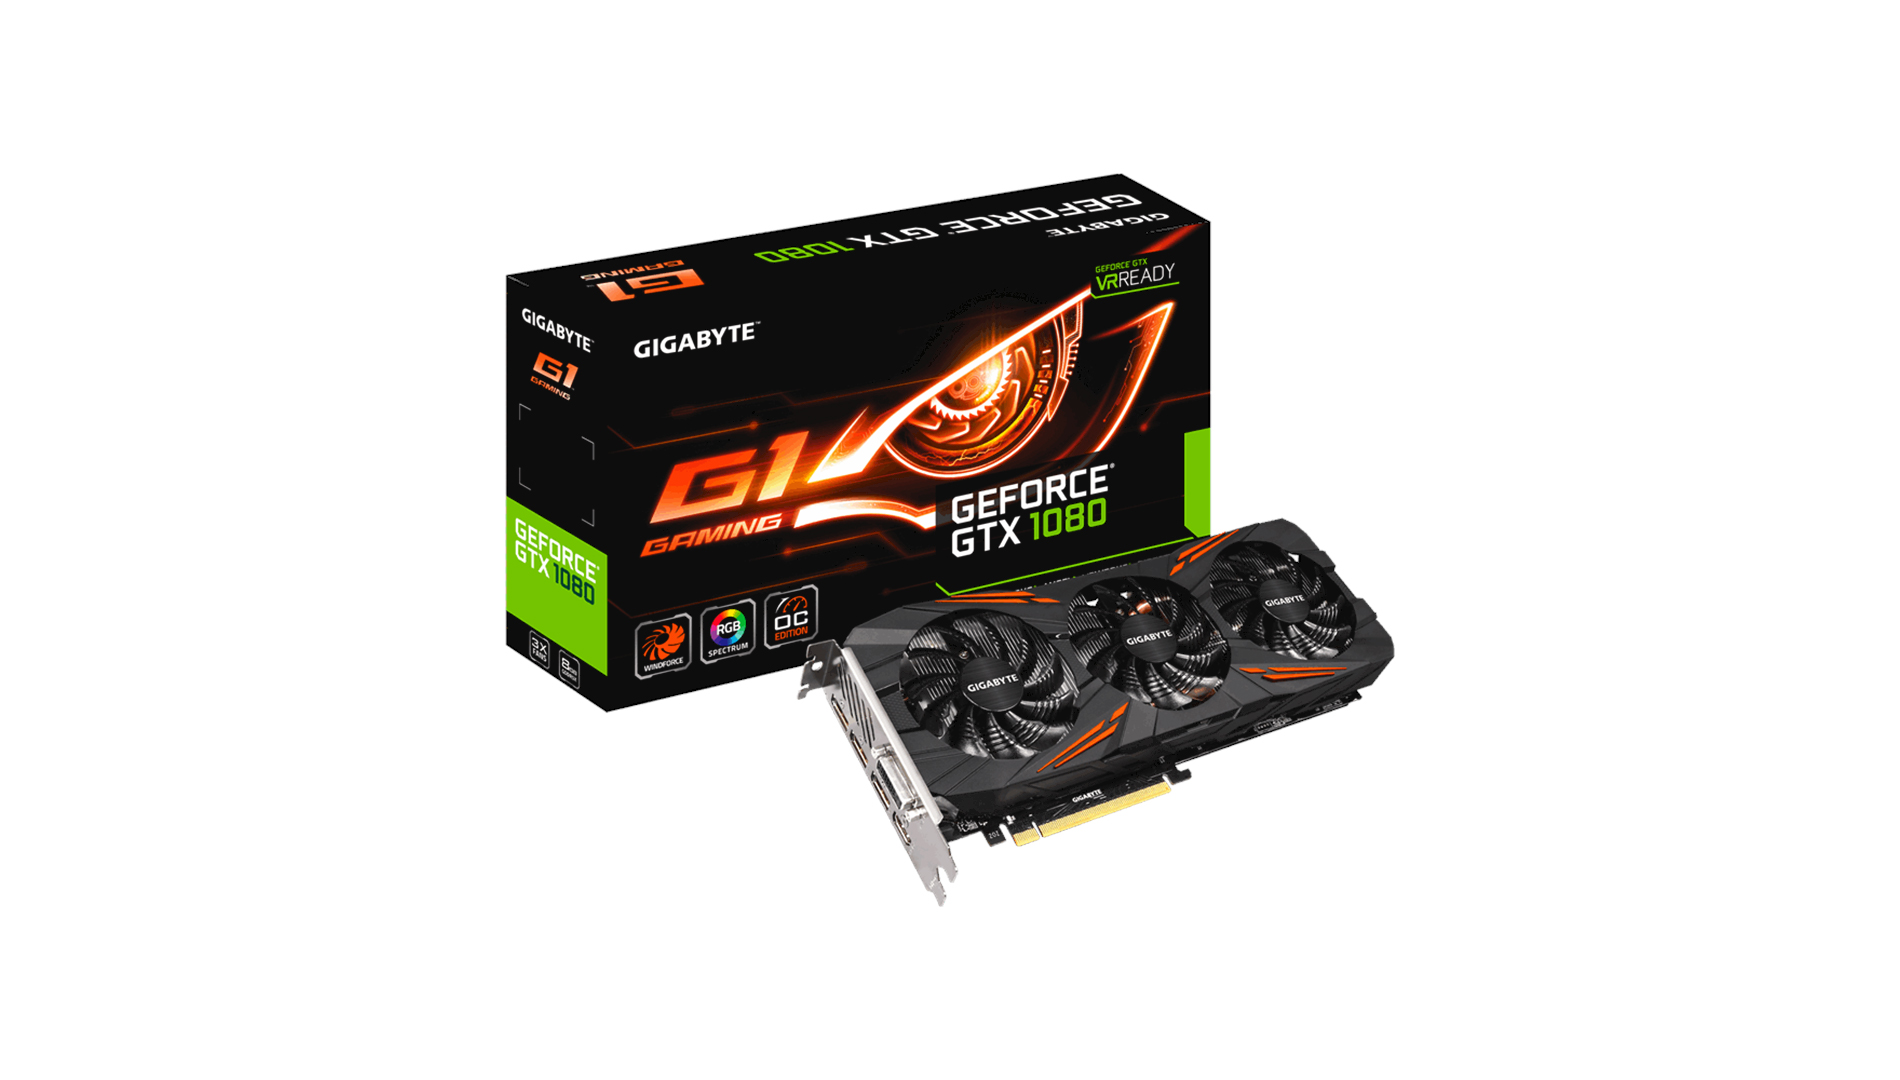 You Can Currently Purchase A GTX 1080 Graphics Card For $579